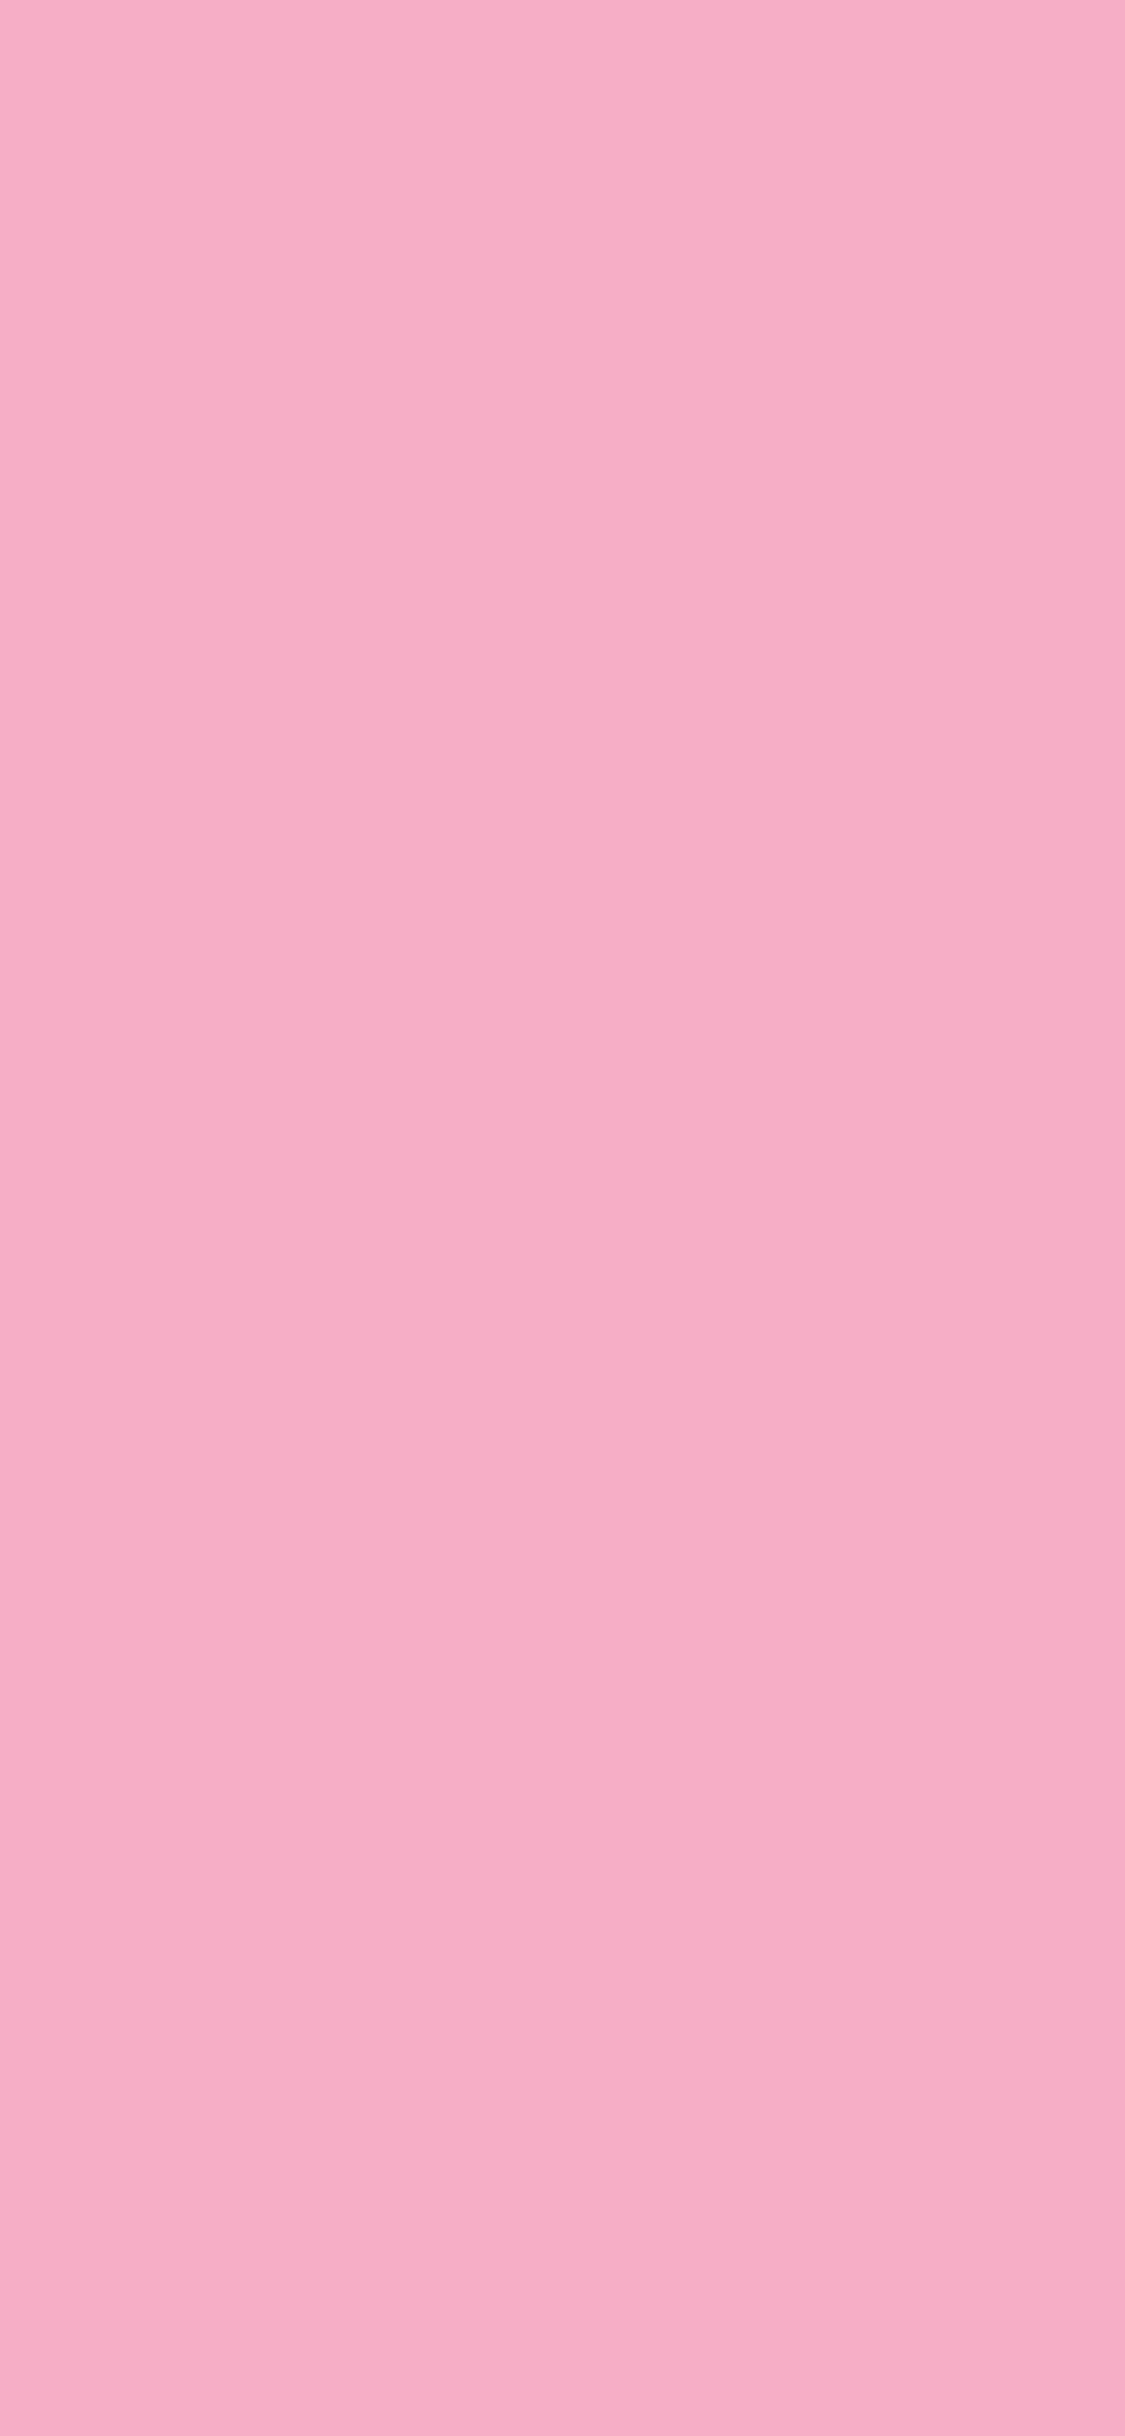 1125x2436 Nadeshiko Pink Solid Color Background